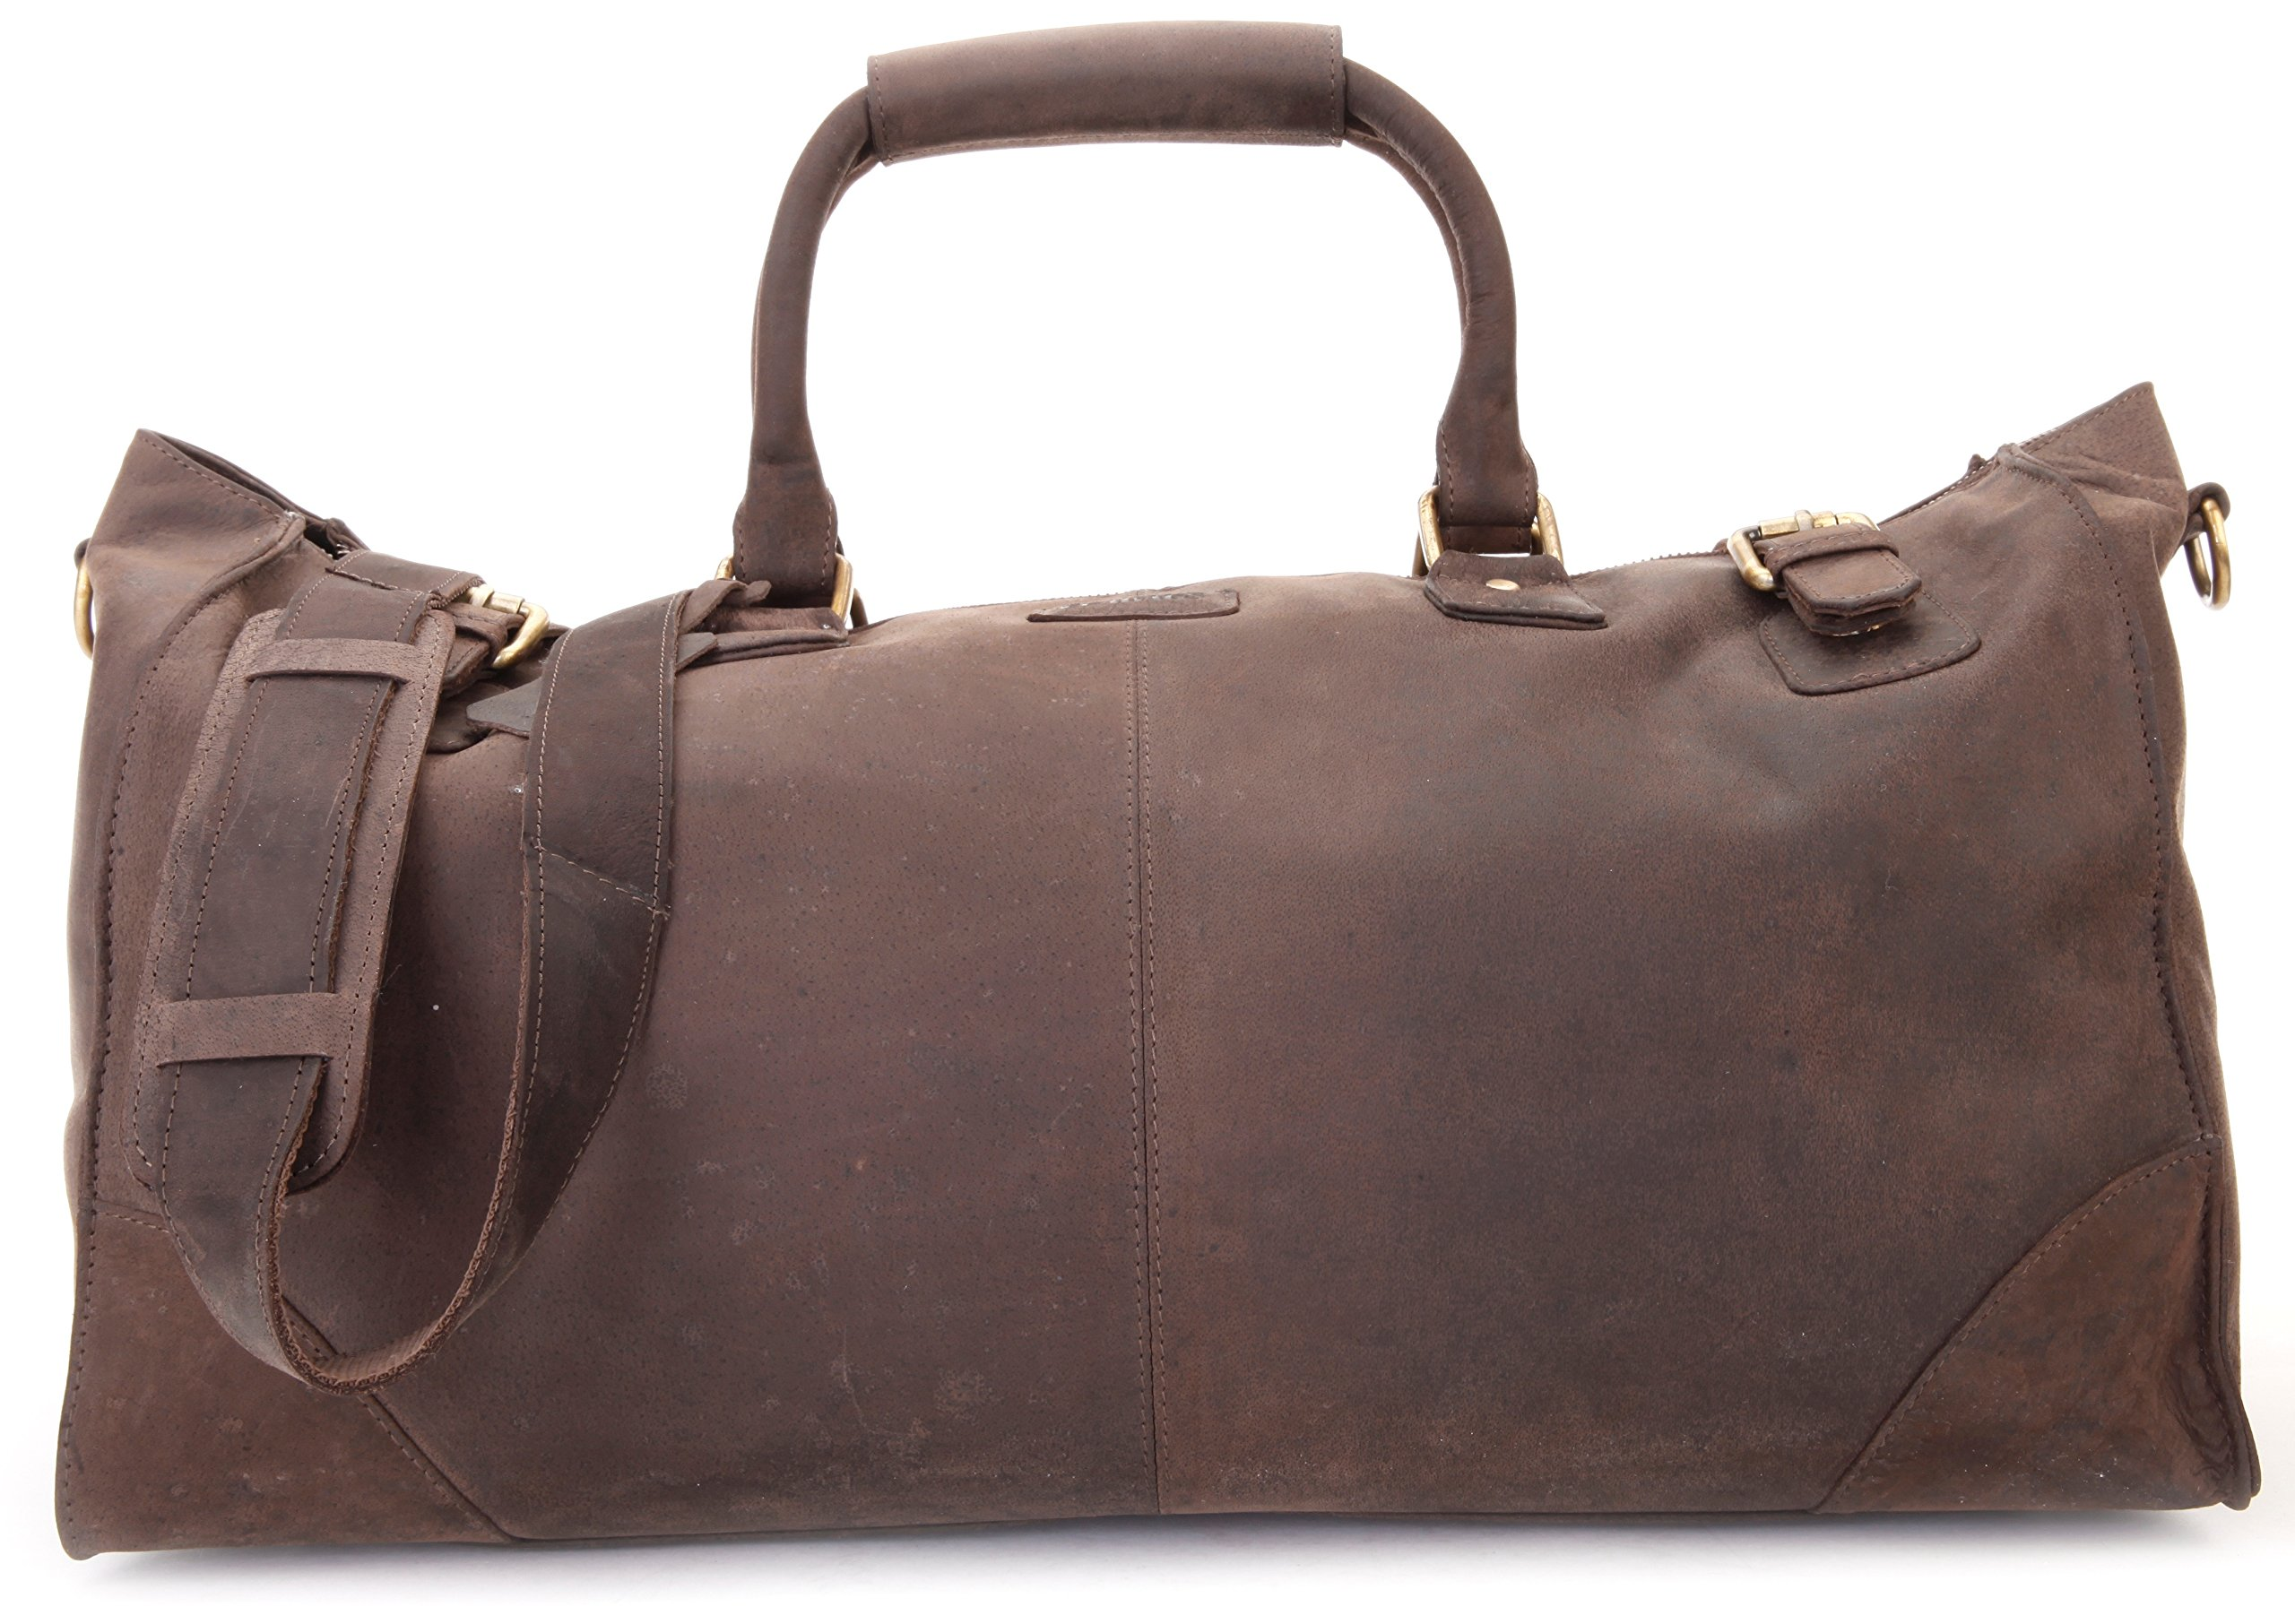 LEABAGS Durham genuine buffalo leather duffle bag in vintage style - Nutmeg by LEABAGS (Image #6)